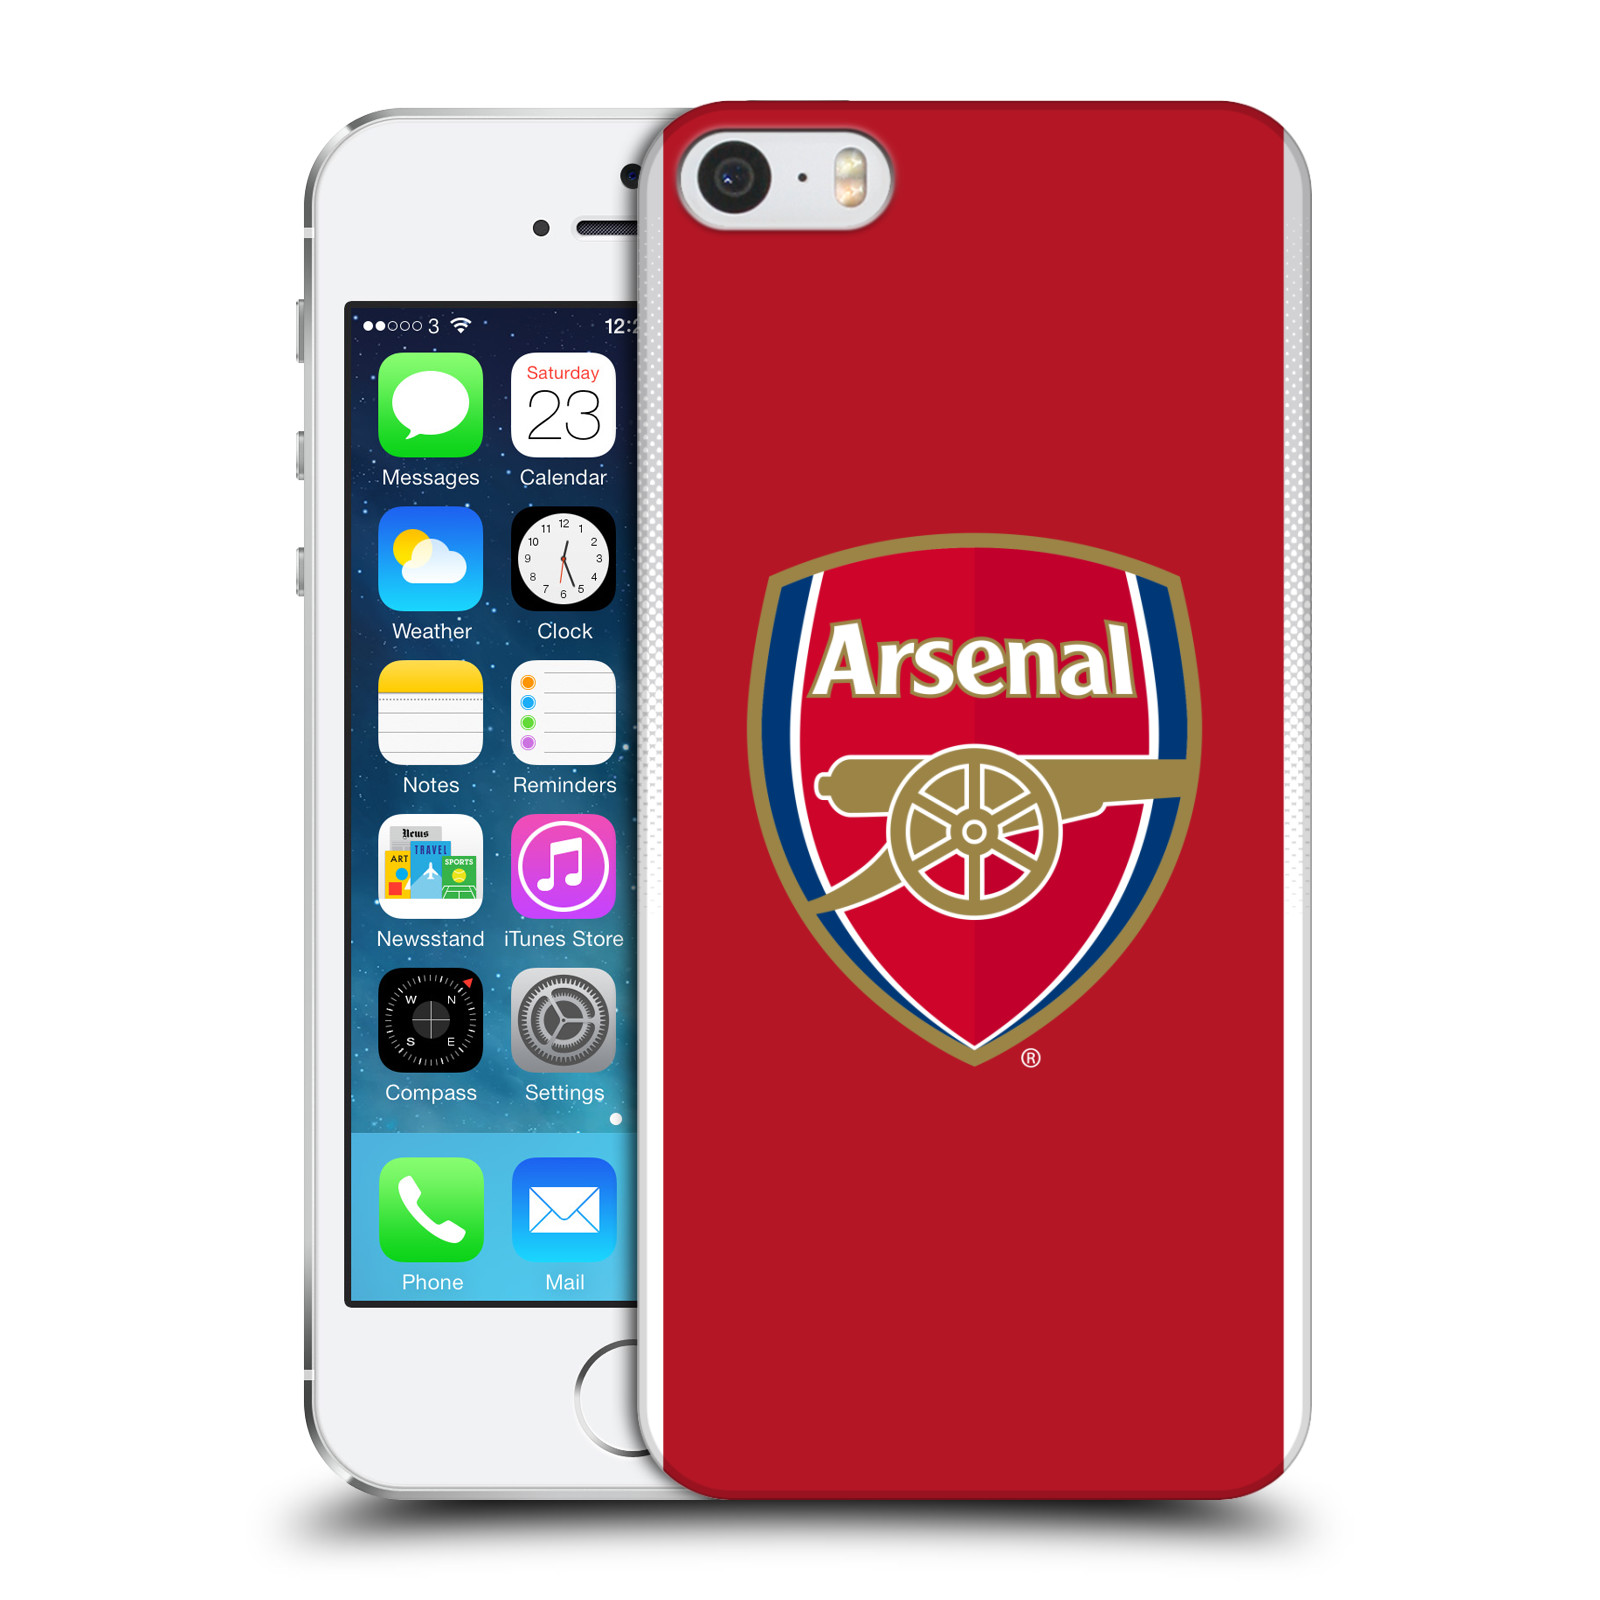 Plastové pouzdro na mobil Apple iPhone SE, 5 a 5S - Head Case - Arsenal FC - Logo klubu